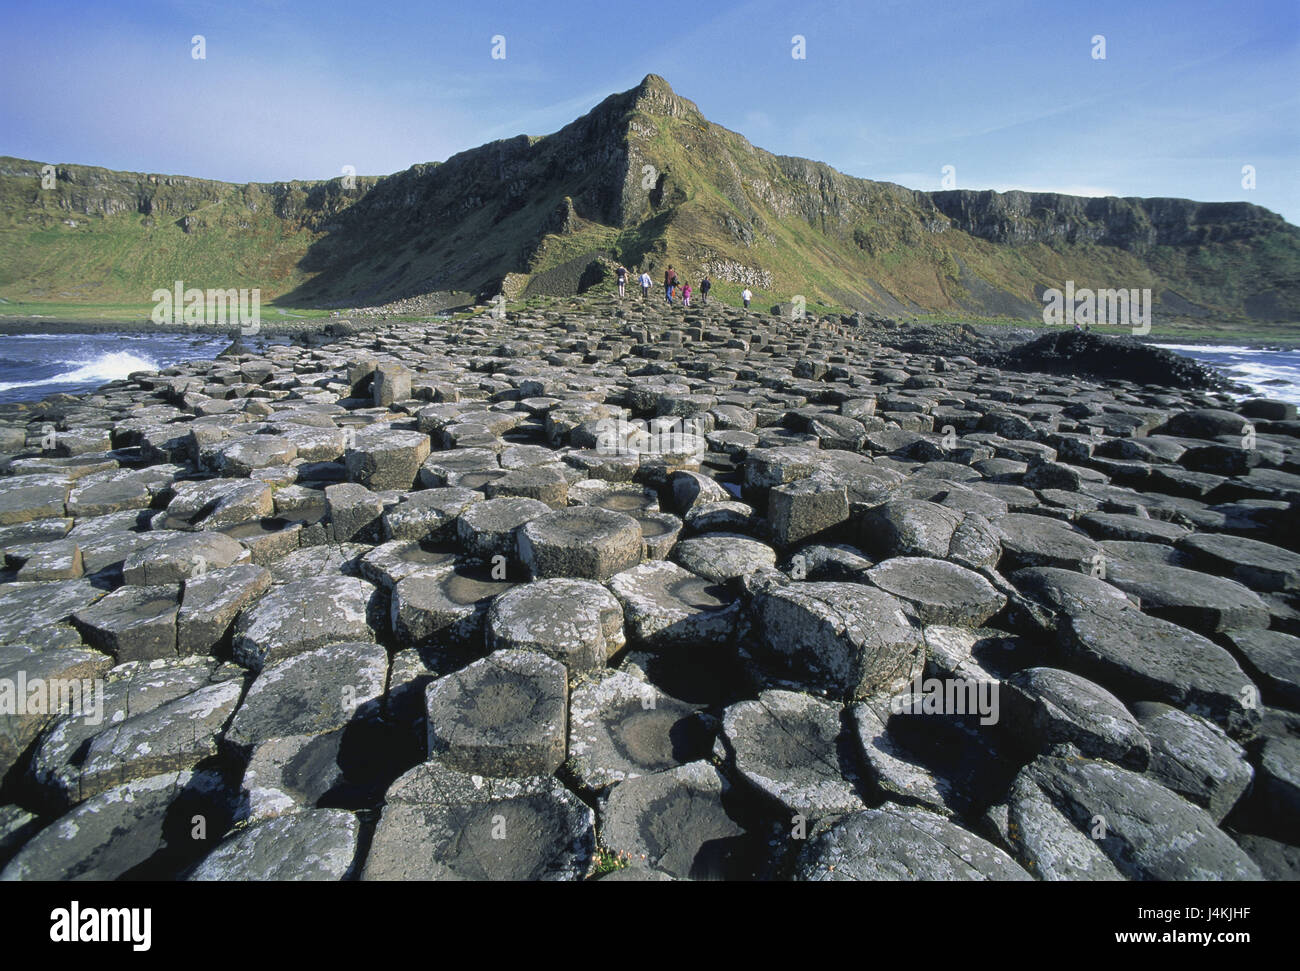 Northern Ireland, county Antrim, bile coast, Giant's Causeway, tourist Ireland, Northern Ireland, coast, basalt, - Stock Image